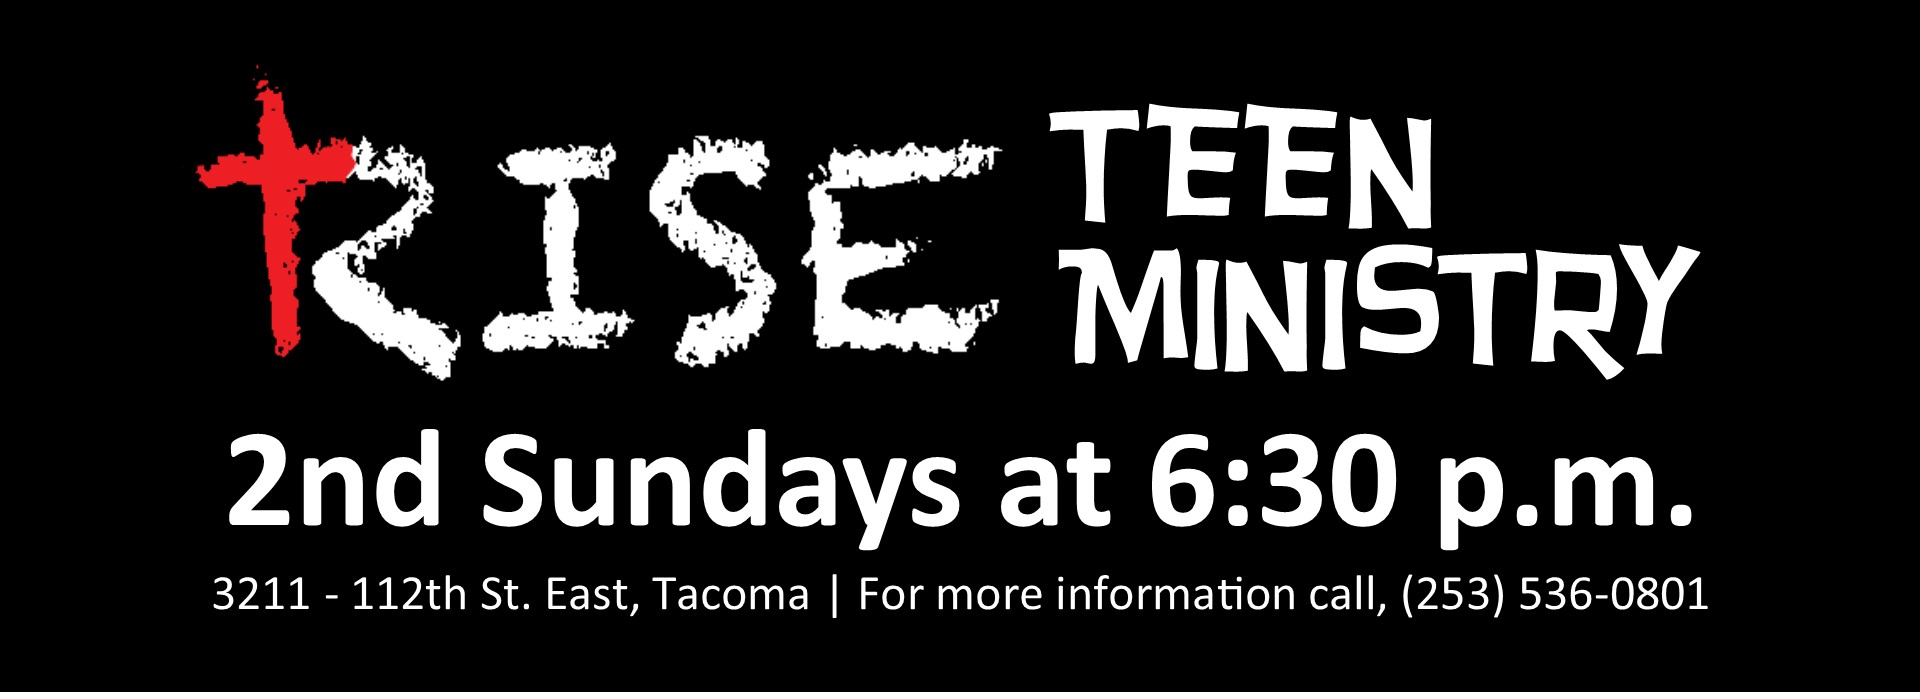 http://www.pacchurch.org/wp-content/uploads/2017/09/RISE-teenministry2017.jpg